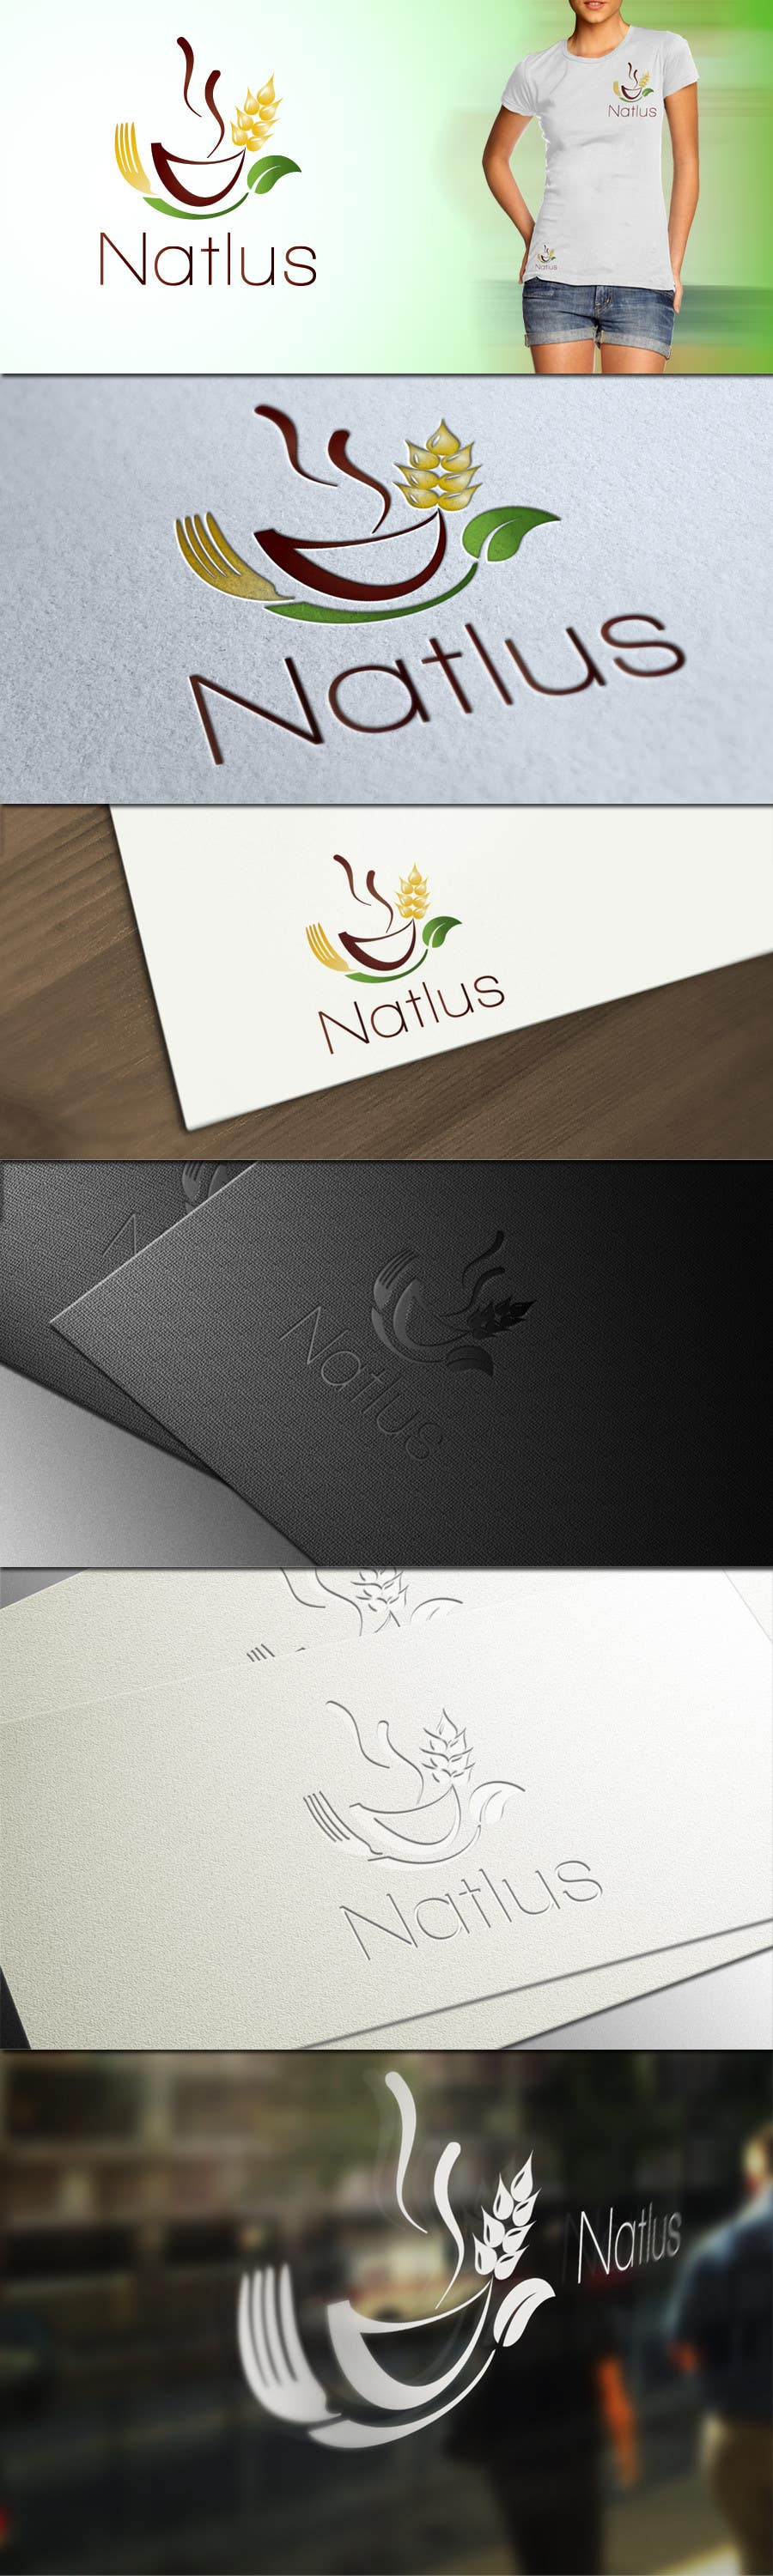 #44 for Design a logo & complete identity for NATLUS, by CTLav